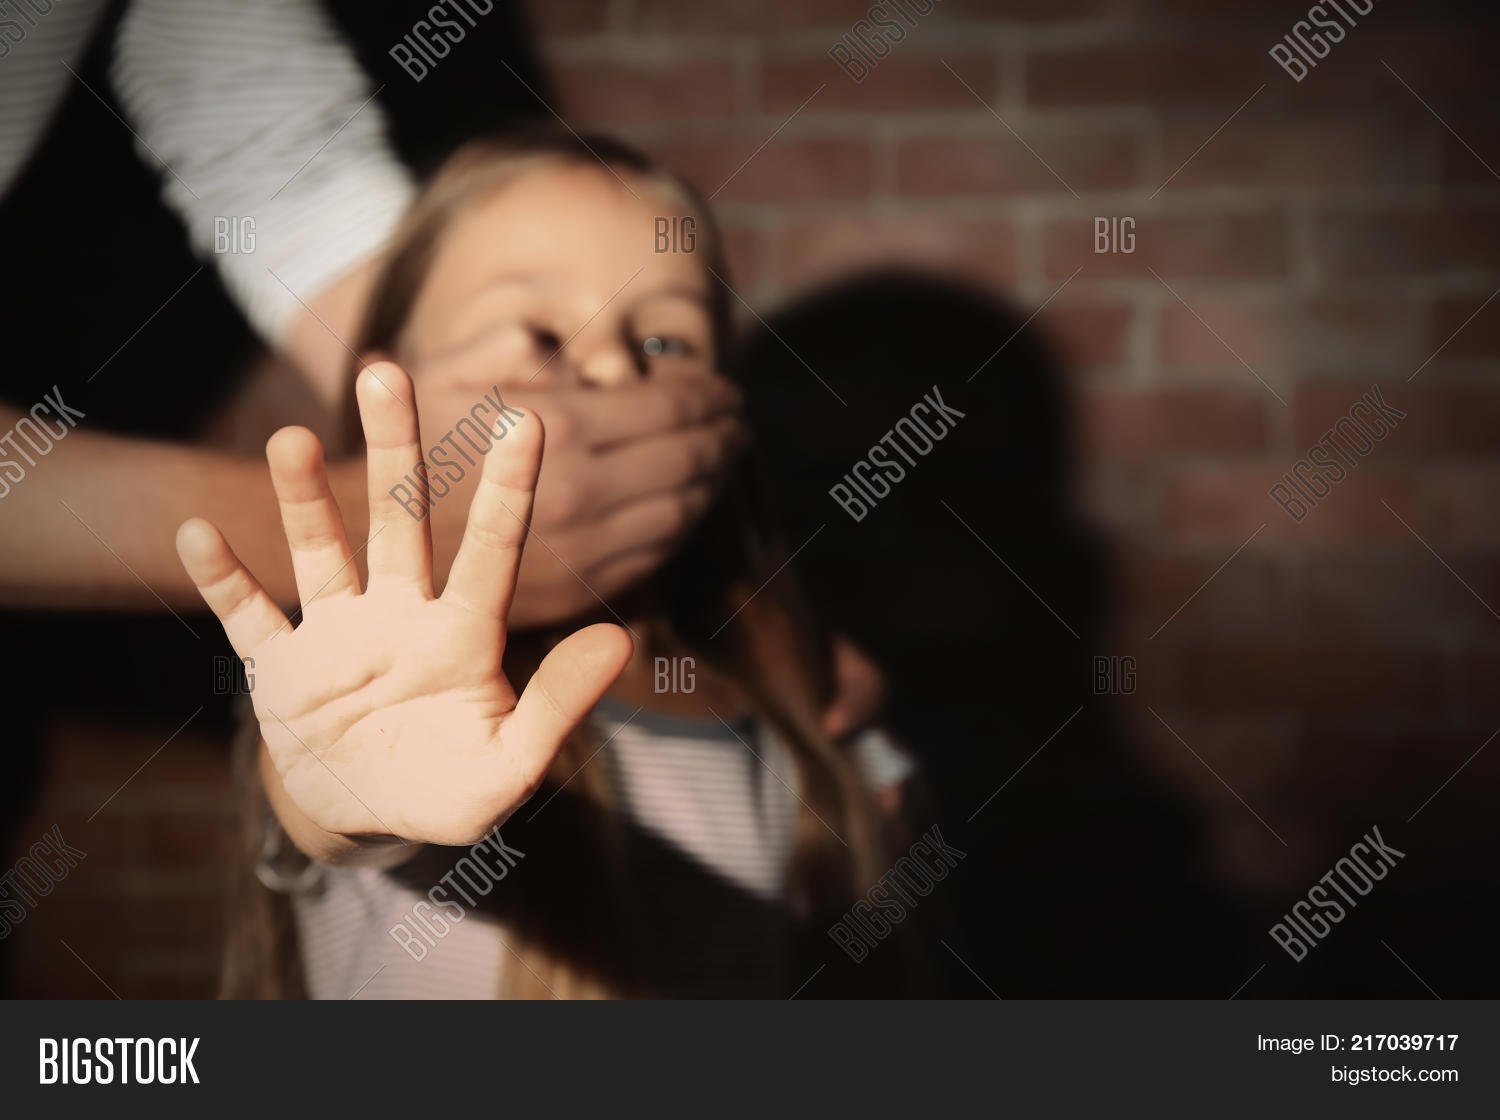 man u0026 39 s hand covering mouth of helpless little girl  abuse of children concept